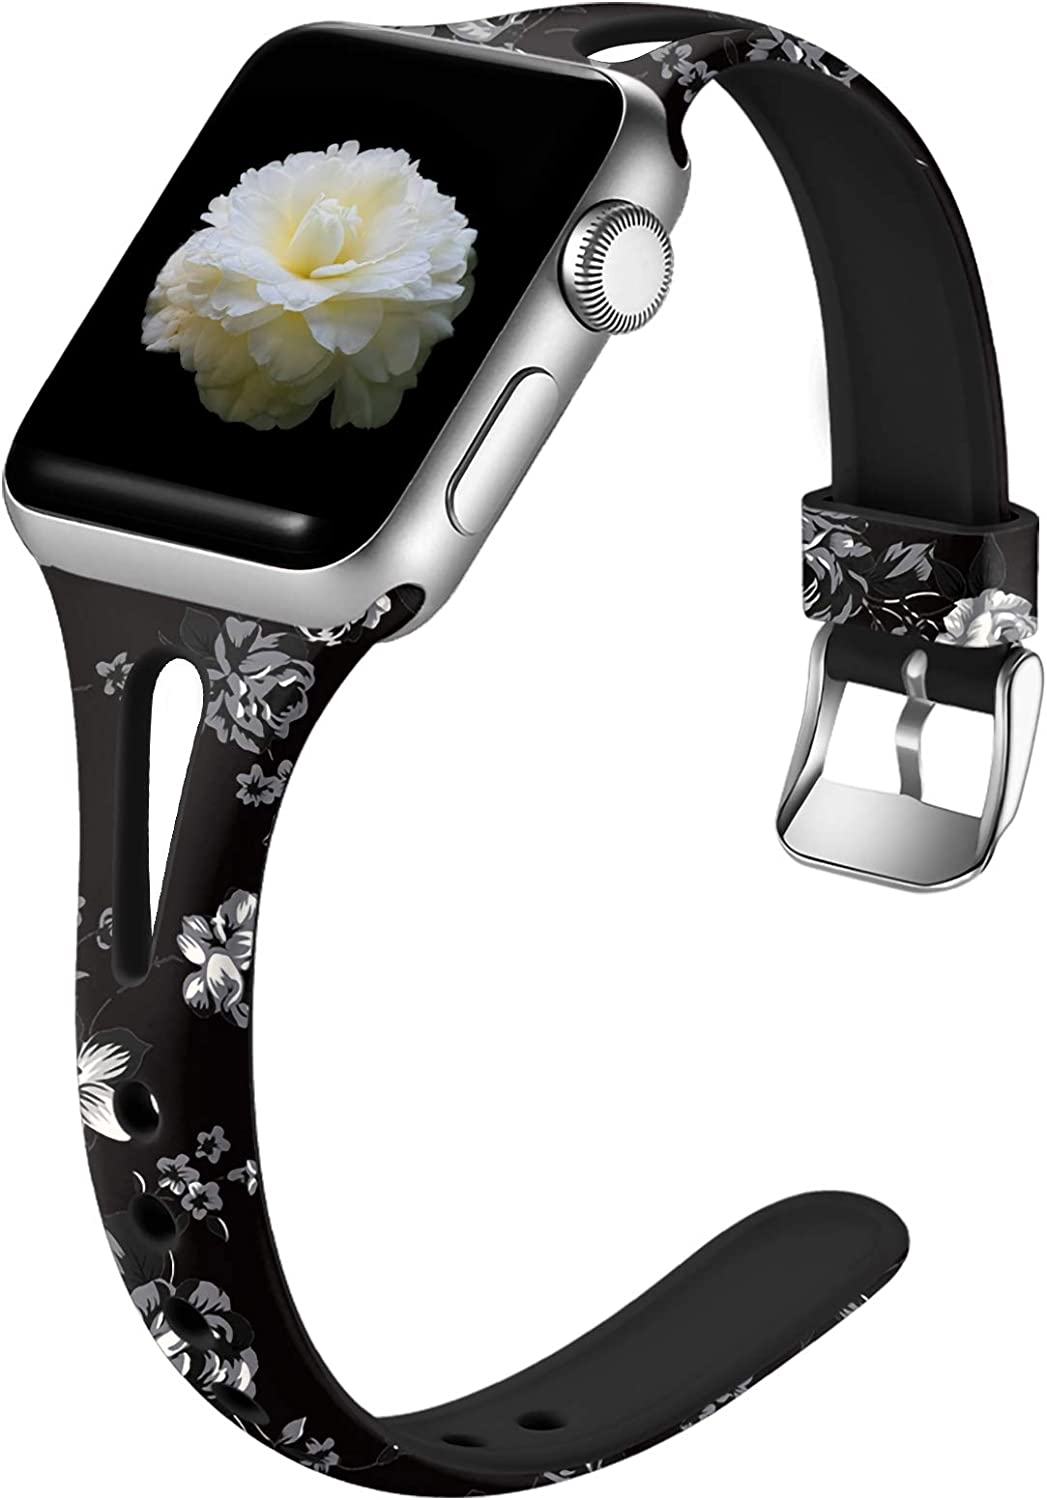 Easuny Slim Bands Compatible for Apple Watch Series 6 44mm Series 5 4 for Womens, Soft Cute Thin for Apple Watch SE 42mm Bands,Series 3 2/1, iWatch Printed Silicone Wristband S/M, Gray Flower